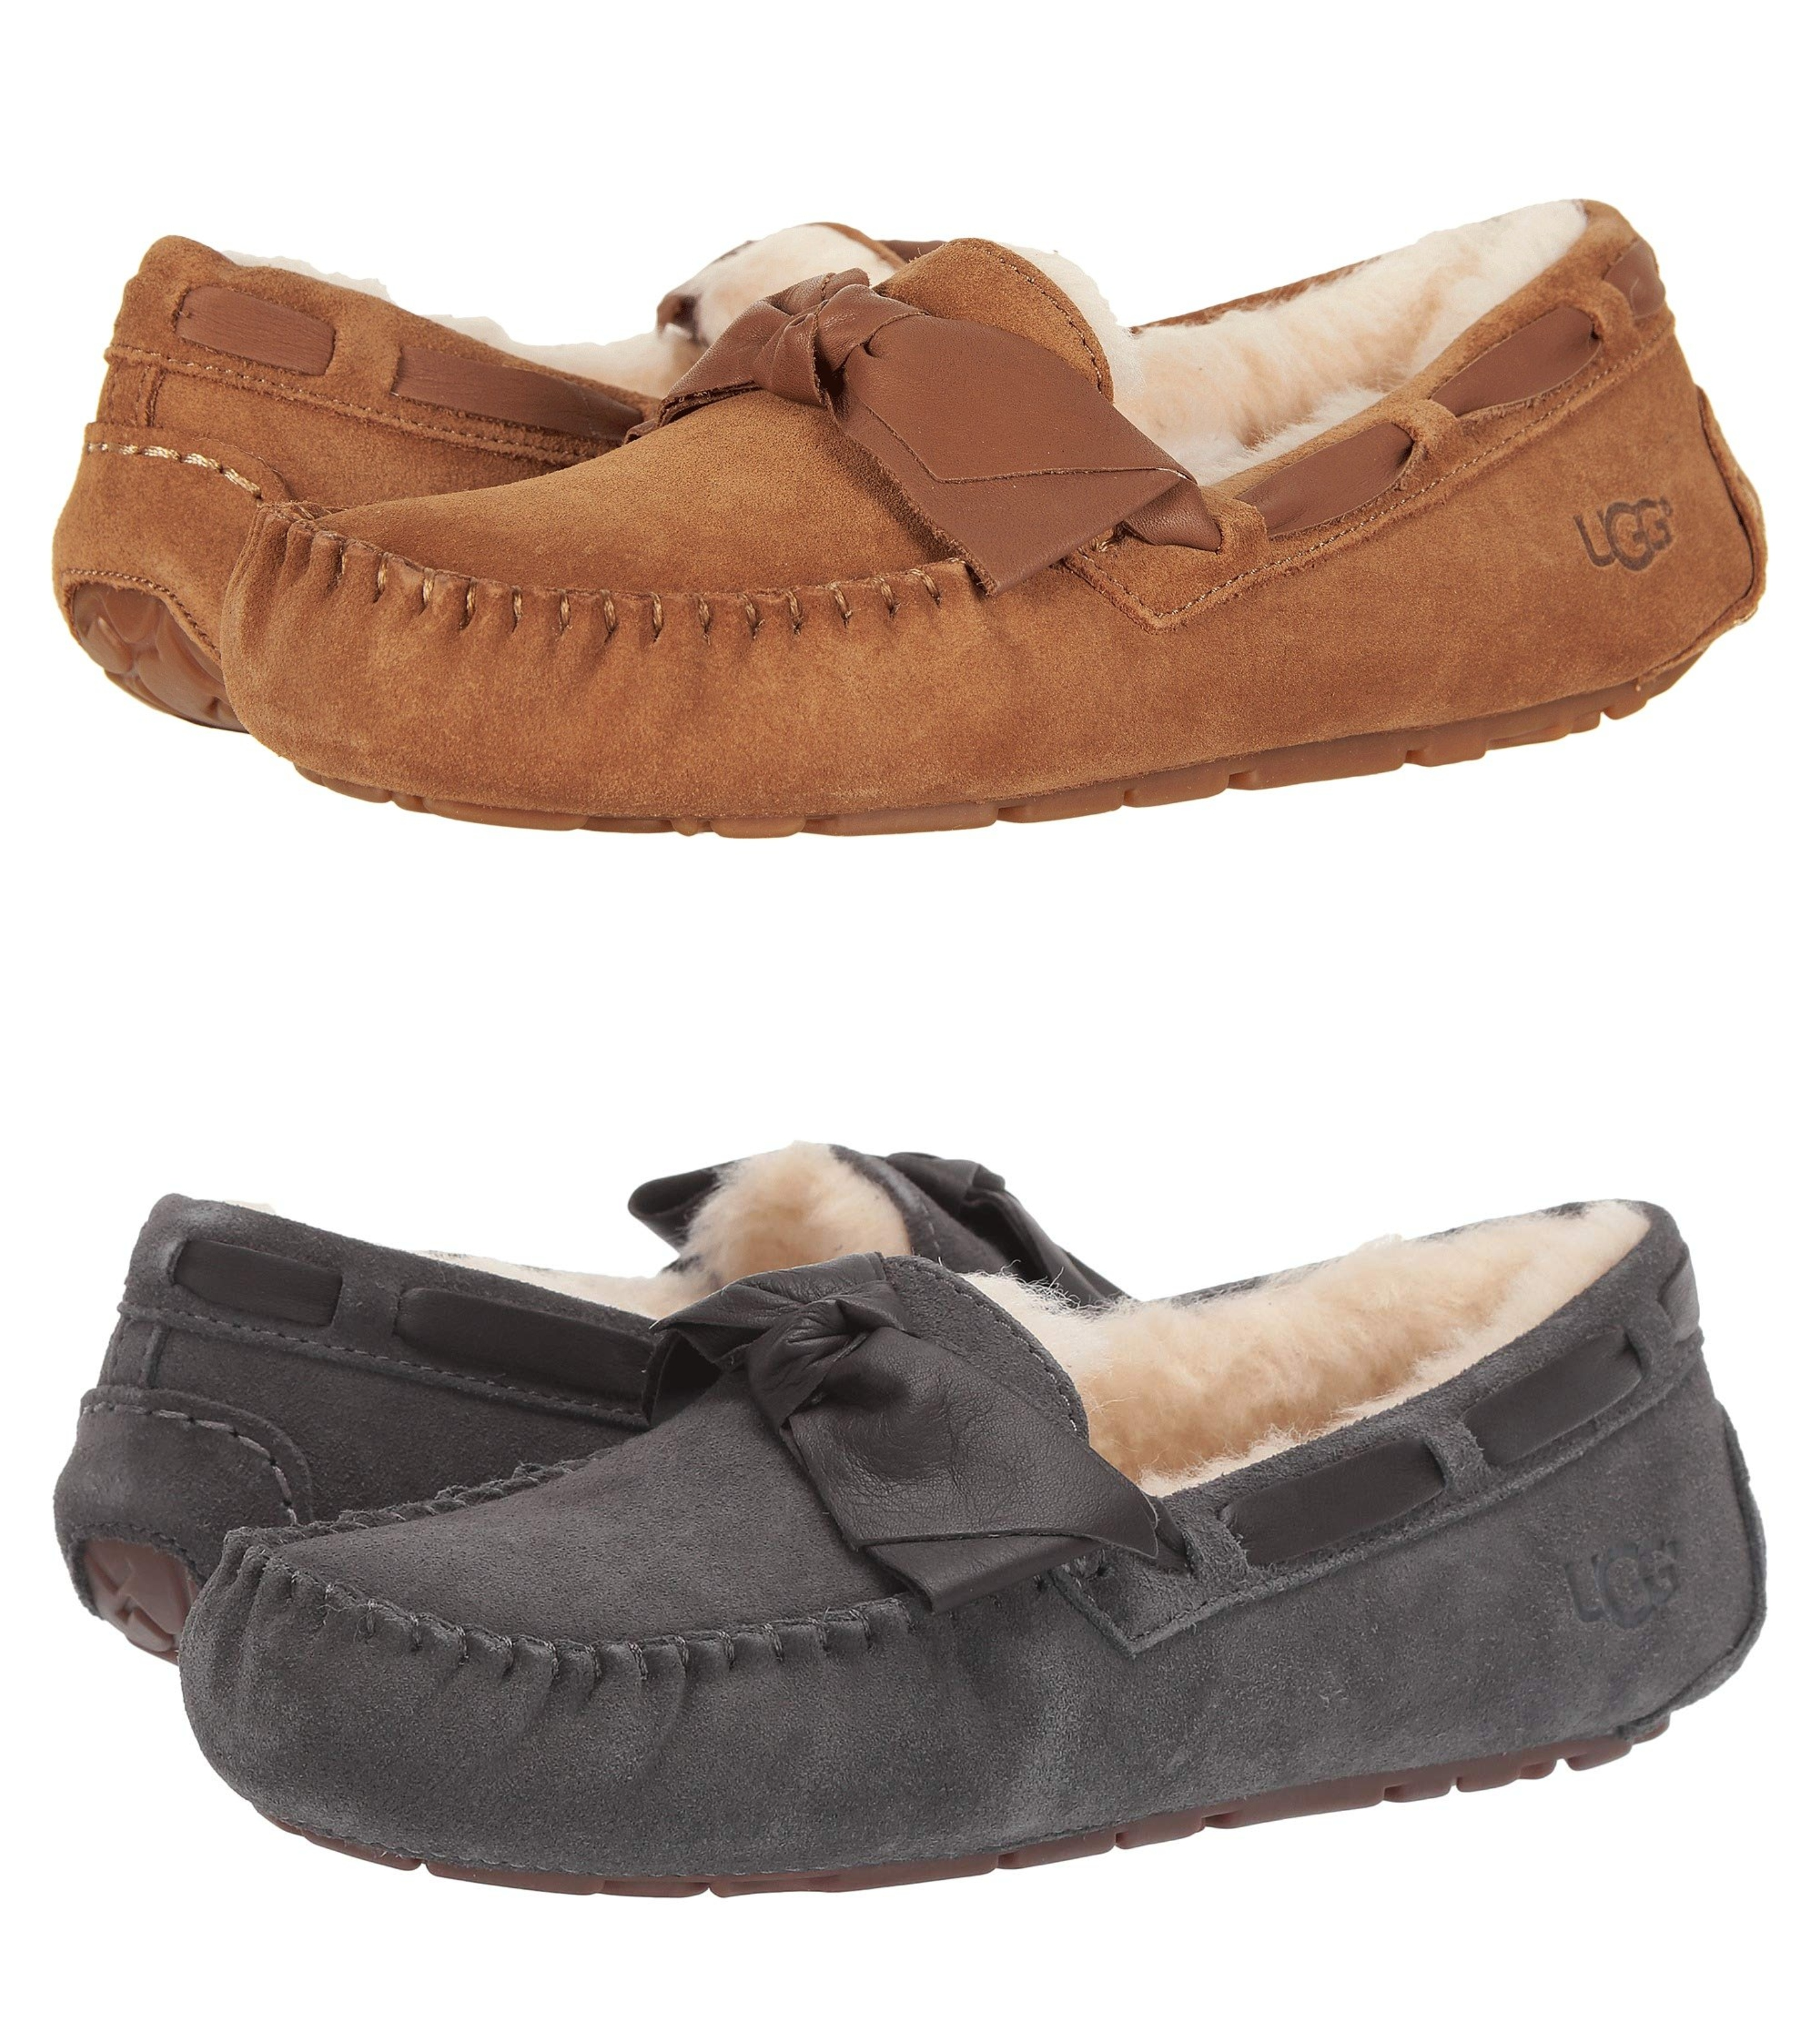 a93c65c61d6 Zappos: UGG Dakota Leather Bow Slippers – 46% Off + Free Shipping ...